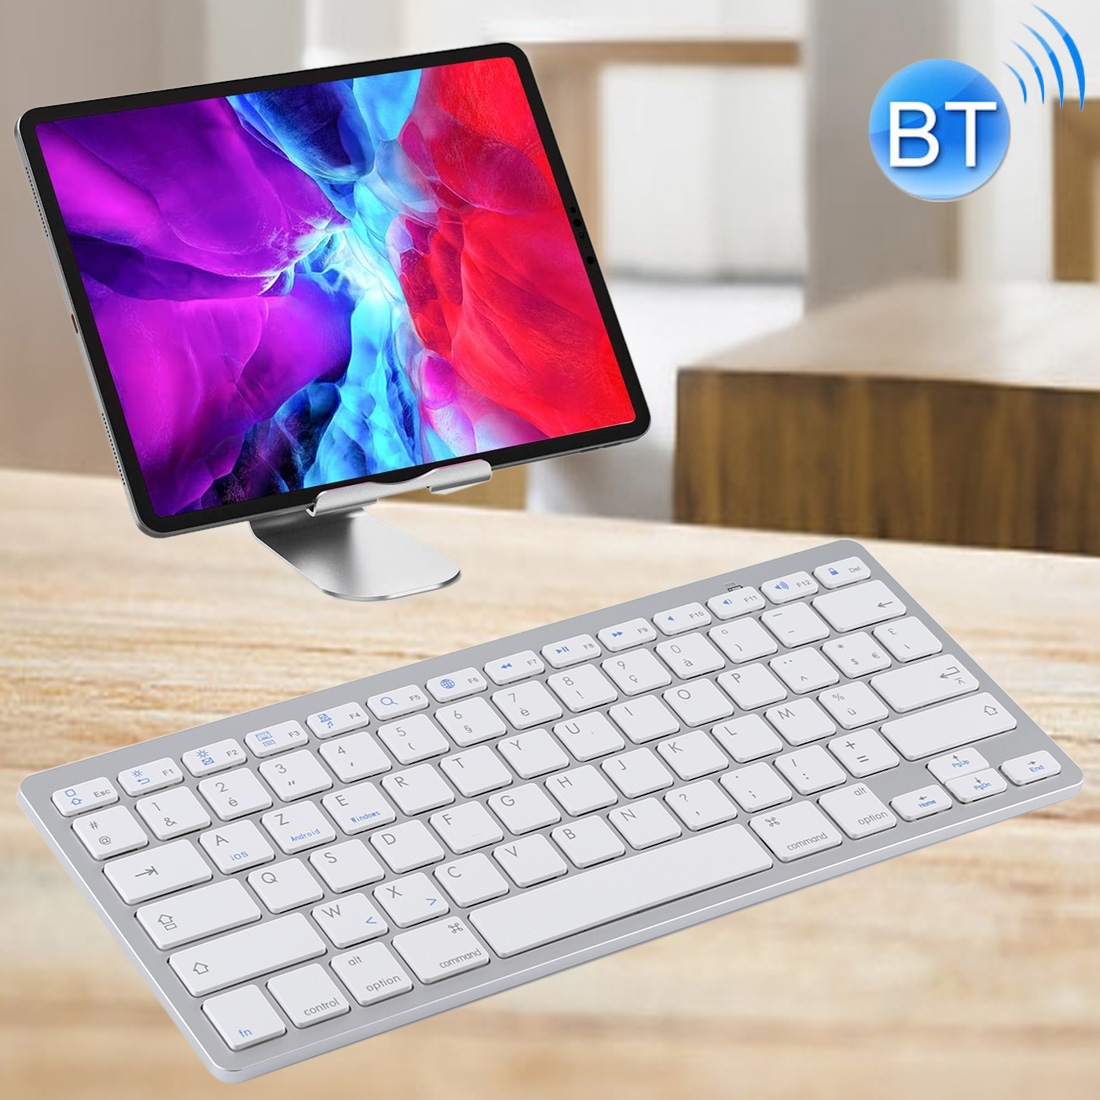 Wireless Keyboard For iPad, Samsung, Tablets, Smart Phones & Computers: French Keys (Silver)